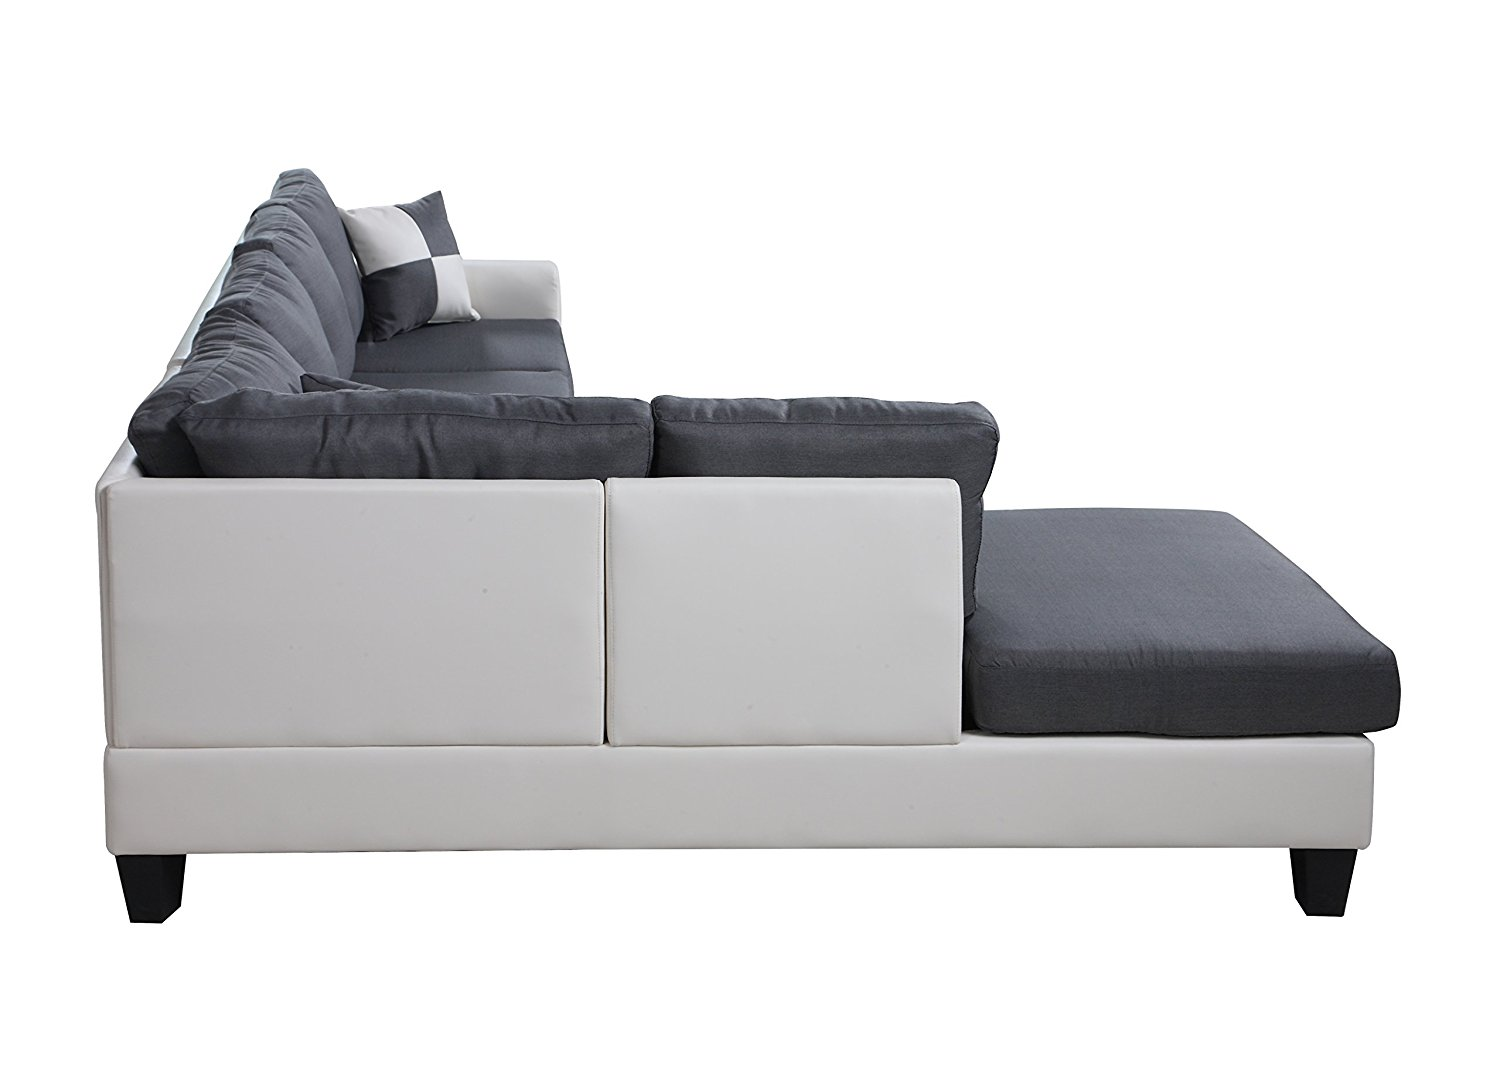 Black Amp White 2 Tone Leather Living Room Sectional Sofa